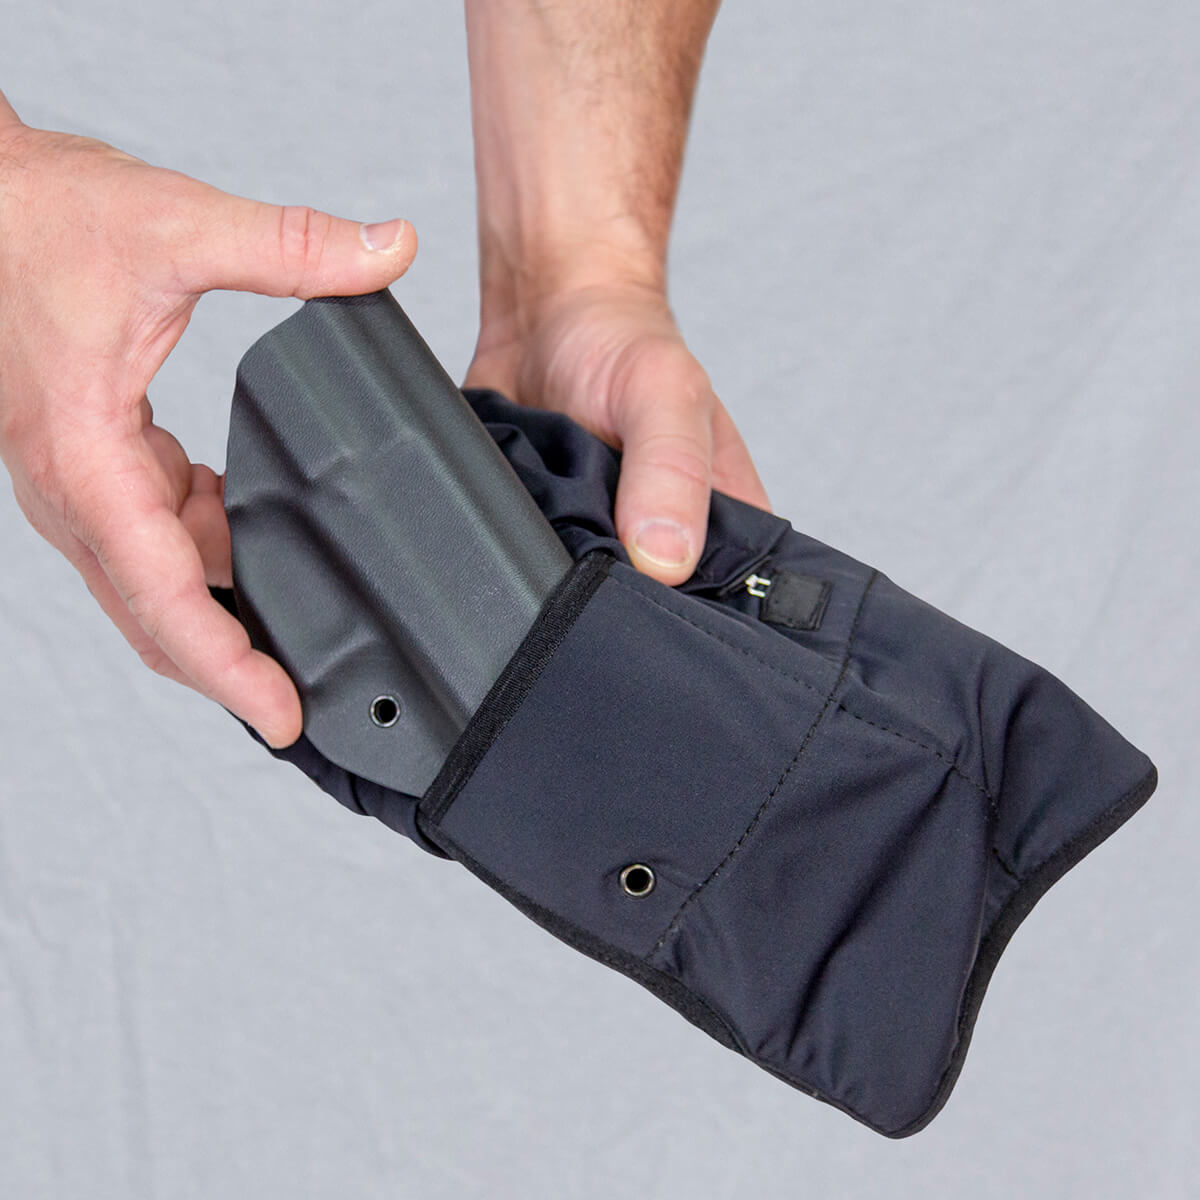 Kydex Holster_8668